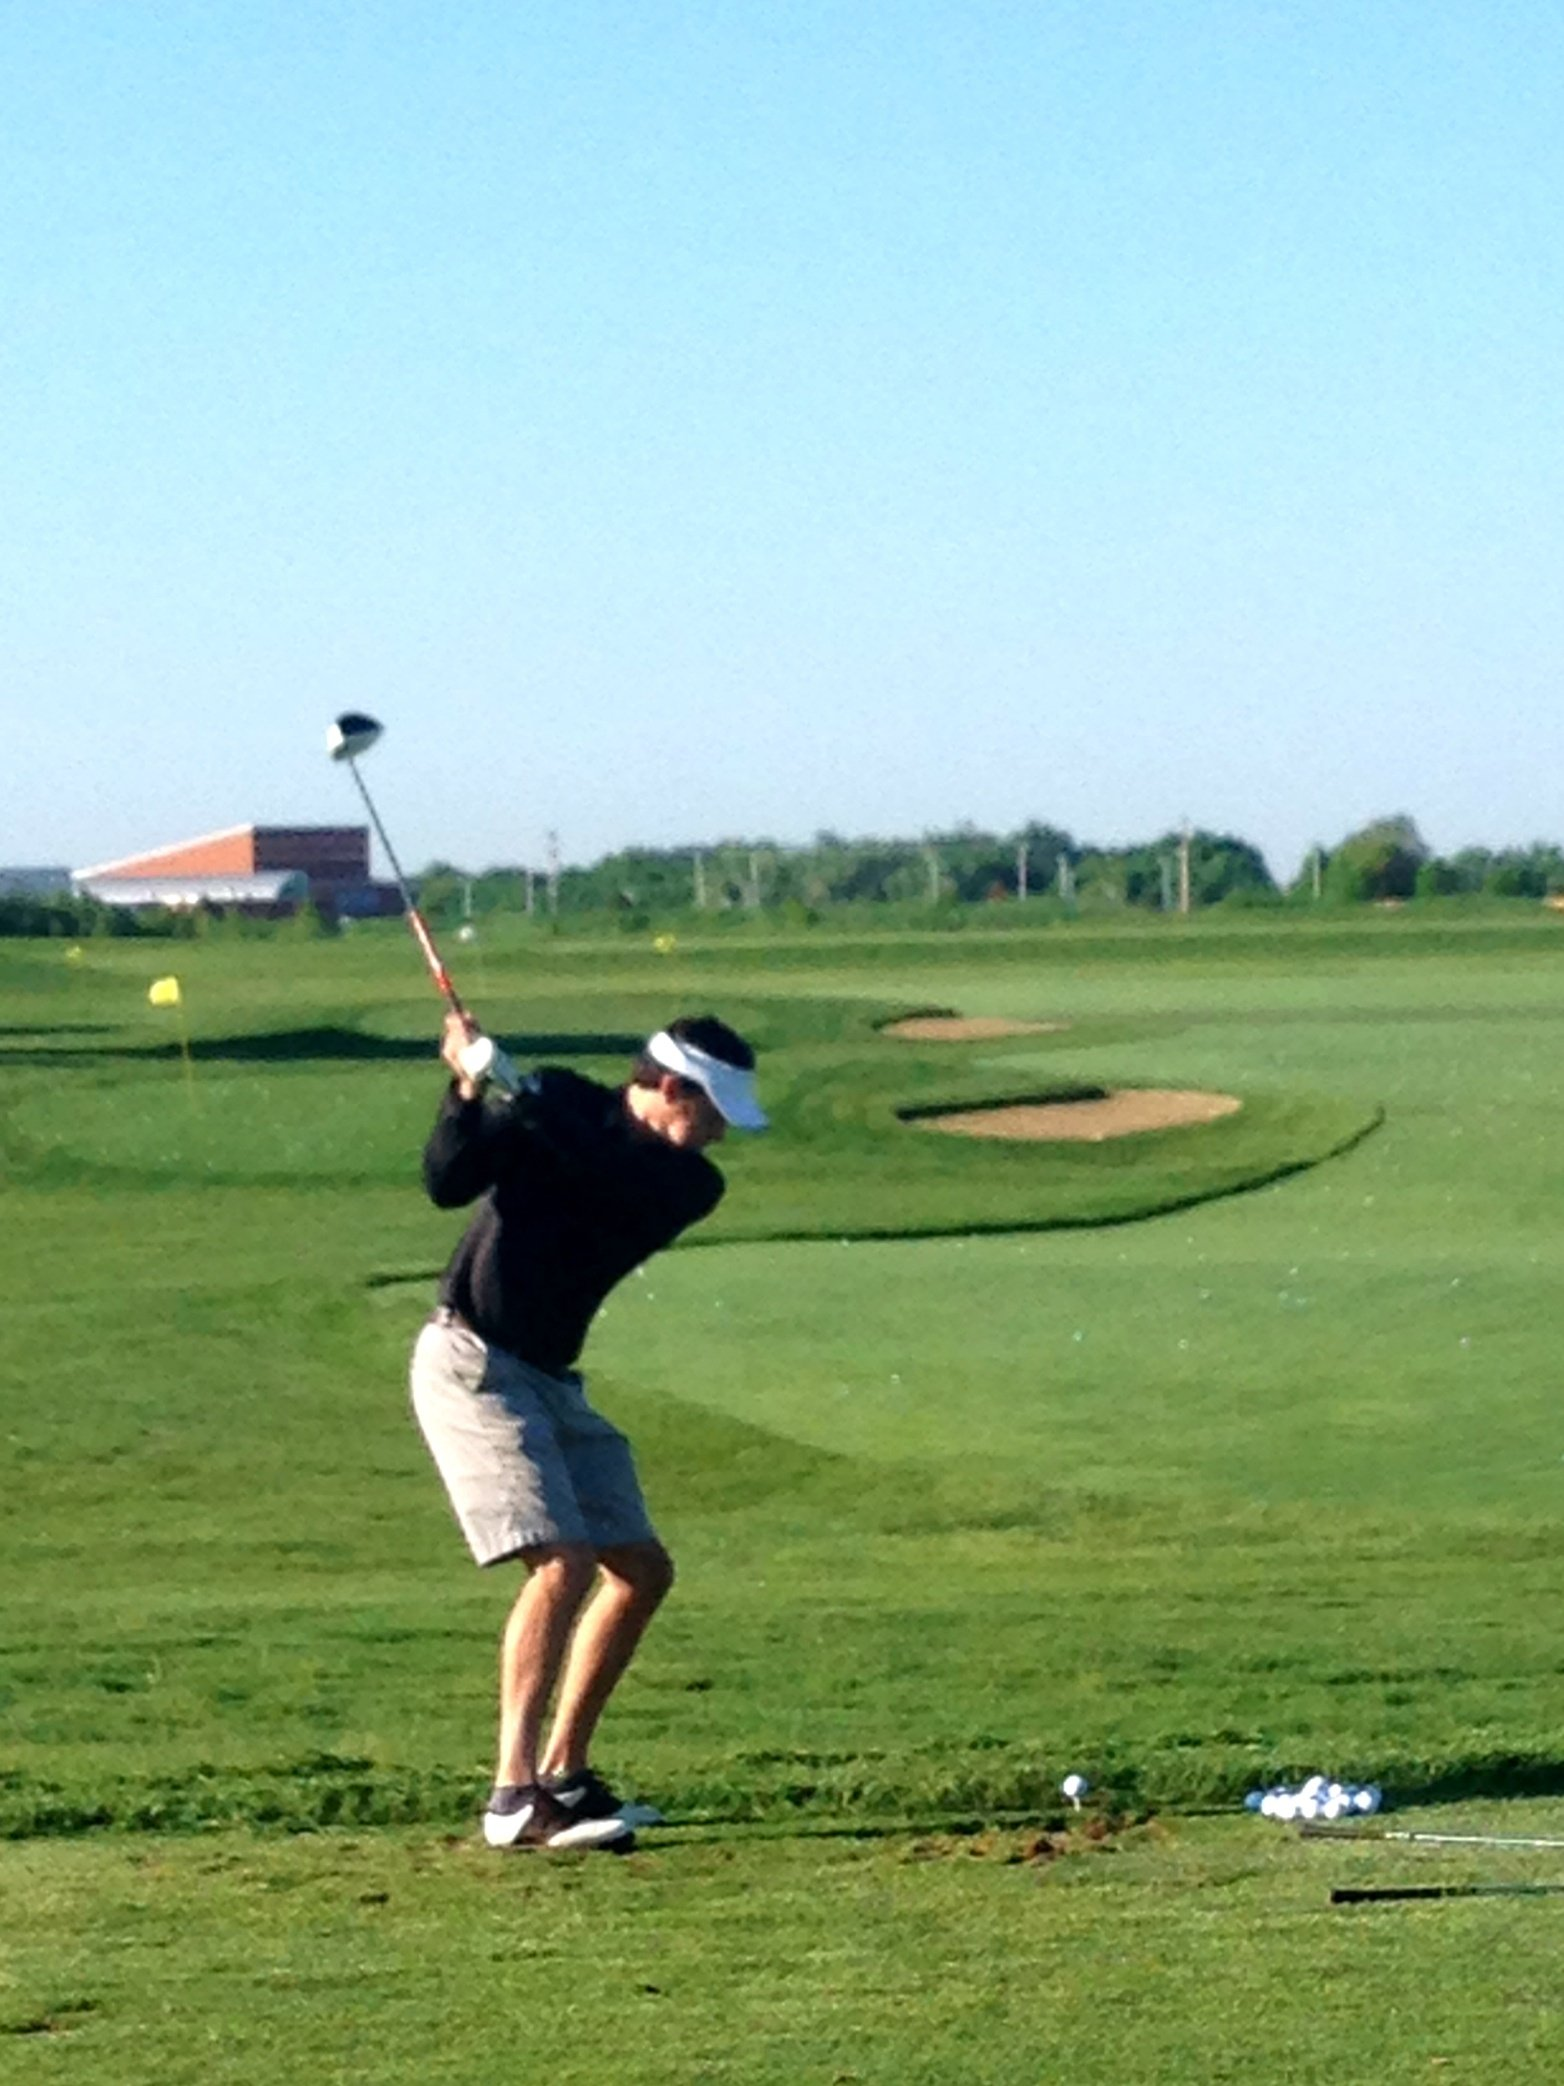 Golfer hitting balls on the practice range at Hazeltine National Golf Club before a private golf touranment